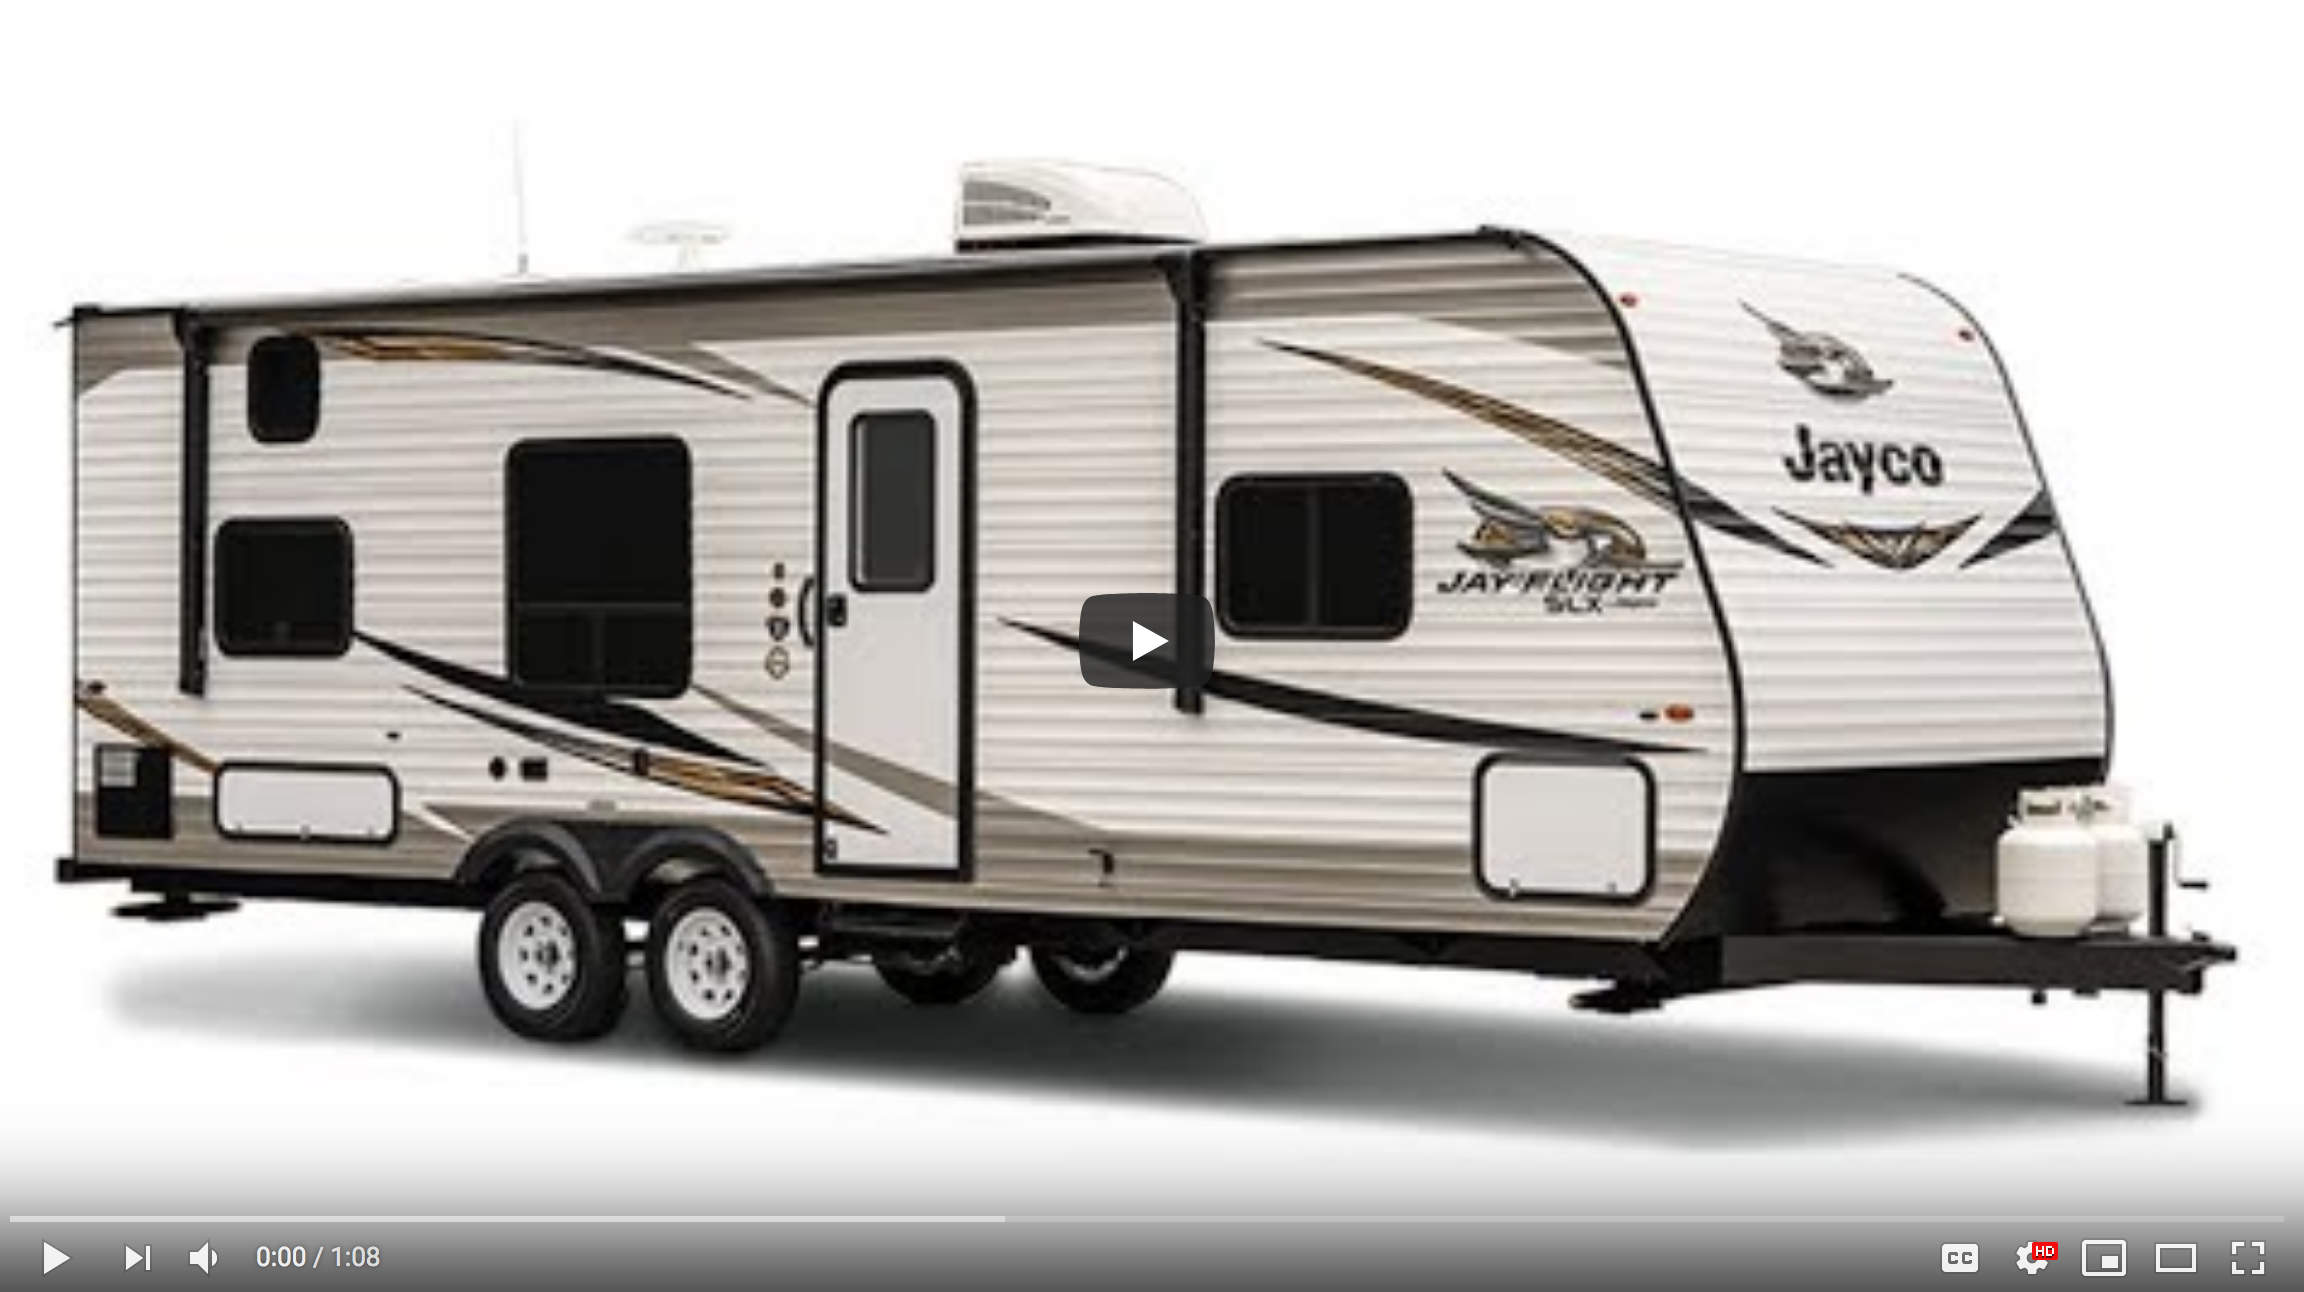 rvs & boats for sale | trailers & campers | thunder bay, on jayco eagle  2011 jayco eagle 321rlts on gulf stream rv wiring diagram, holiday rambler